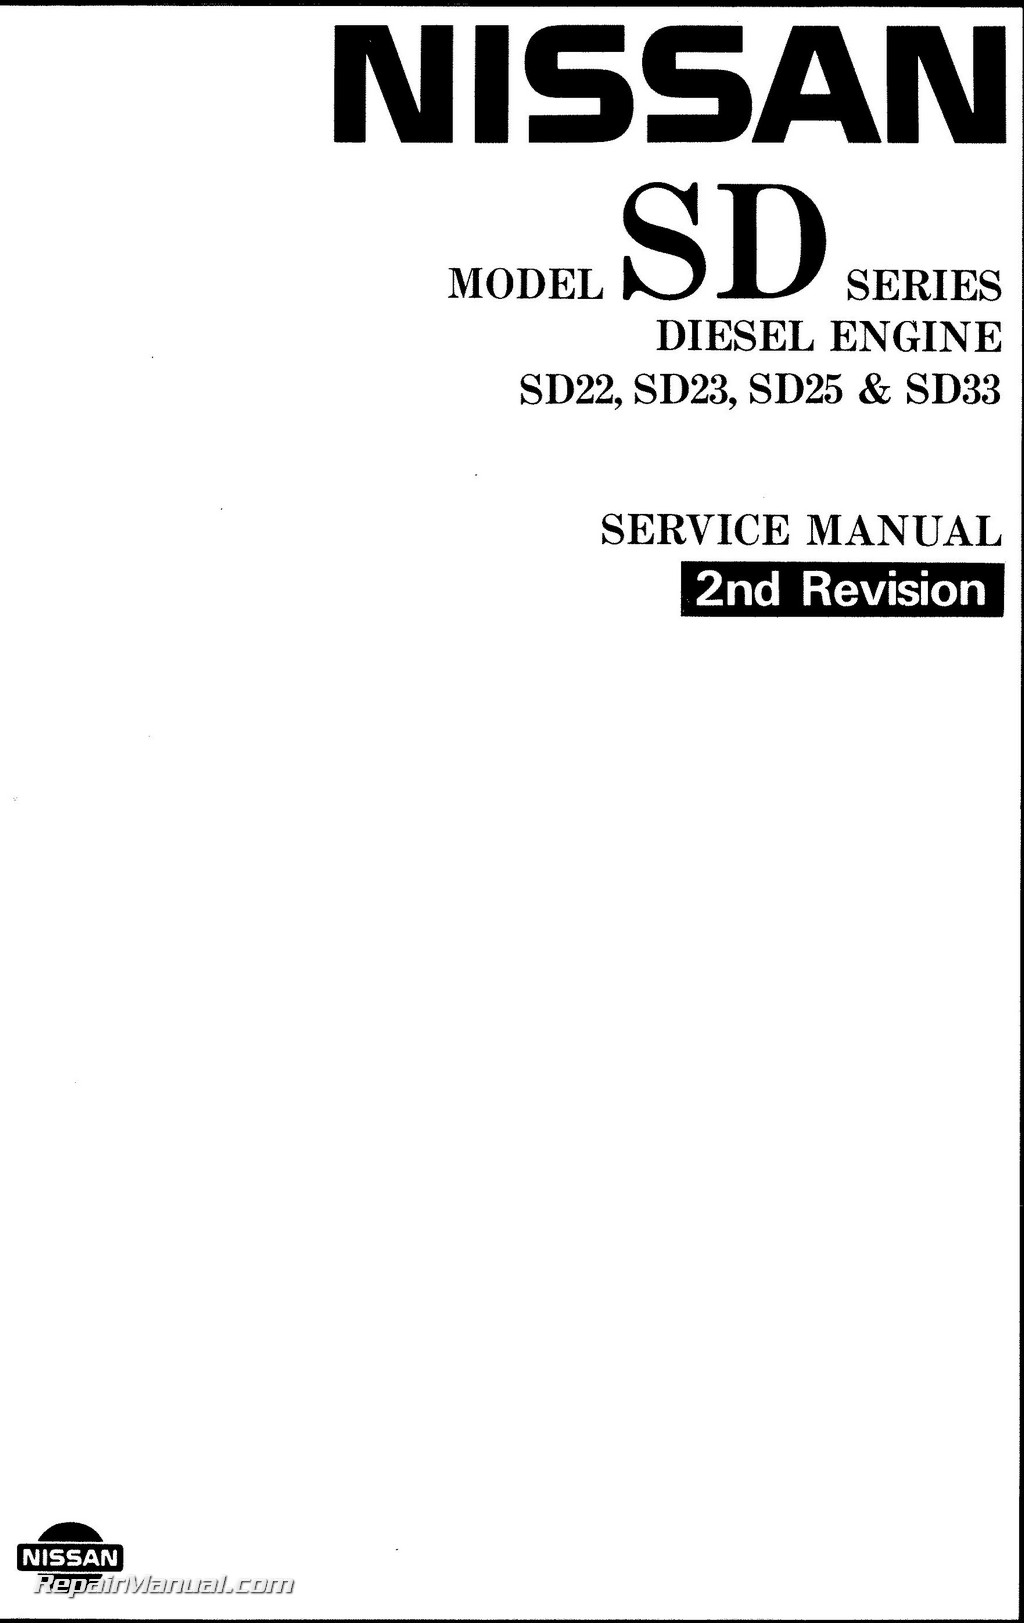 1983 nissan diesel engine sd22 sd23 sd25 sd33 sd33t service manual rh repairmanual com hatz diesel service manual diesel engine service manual